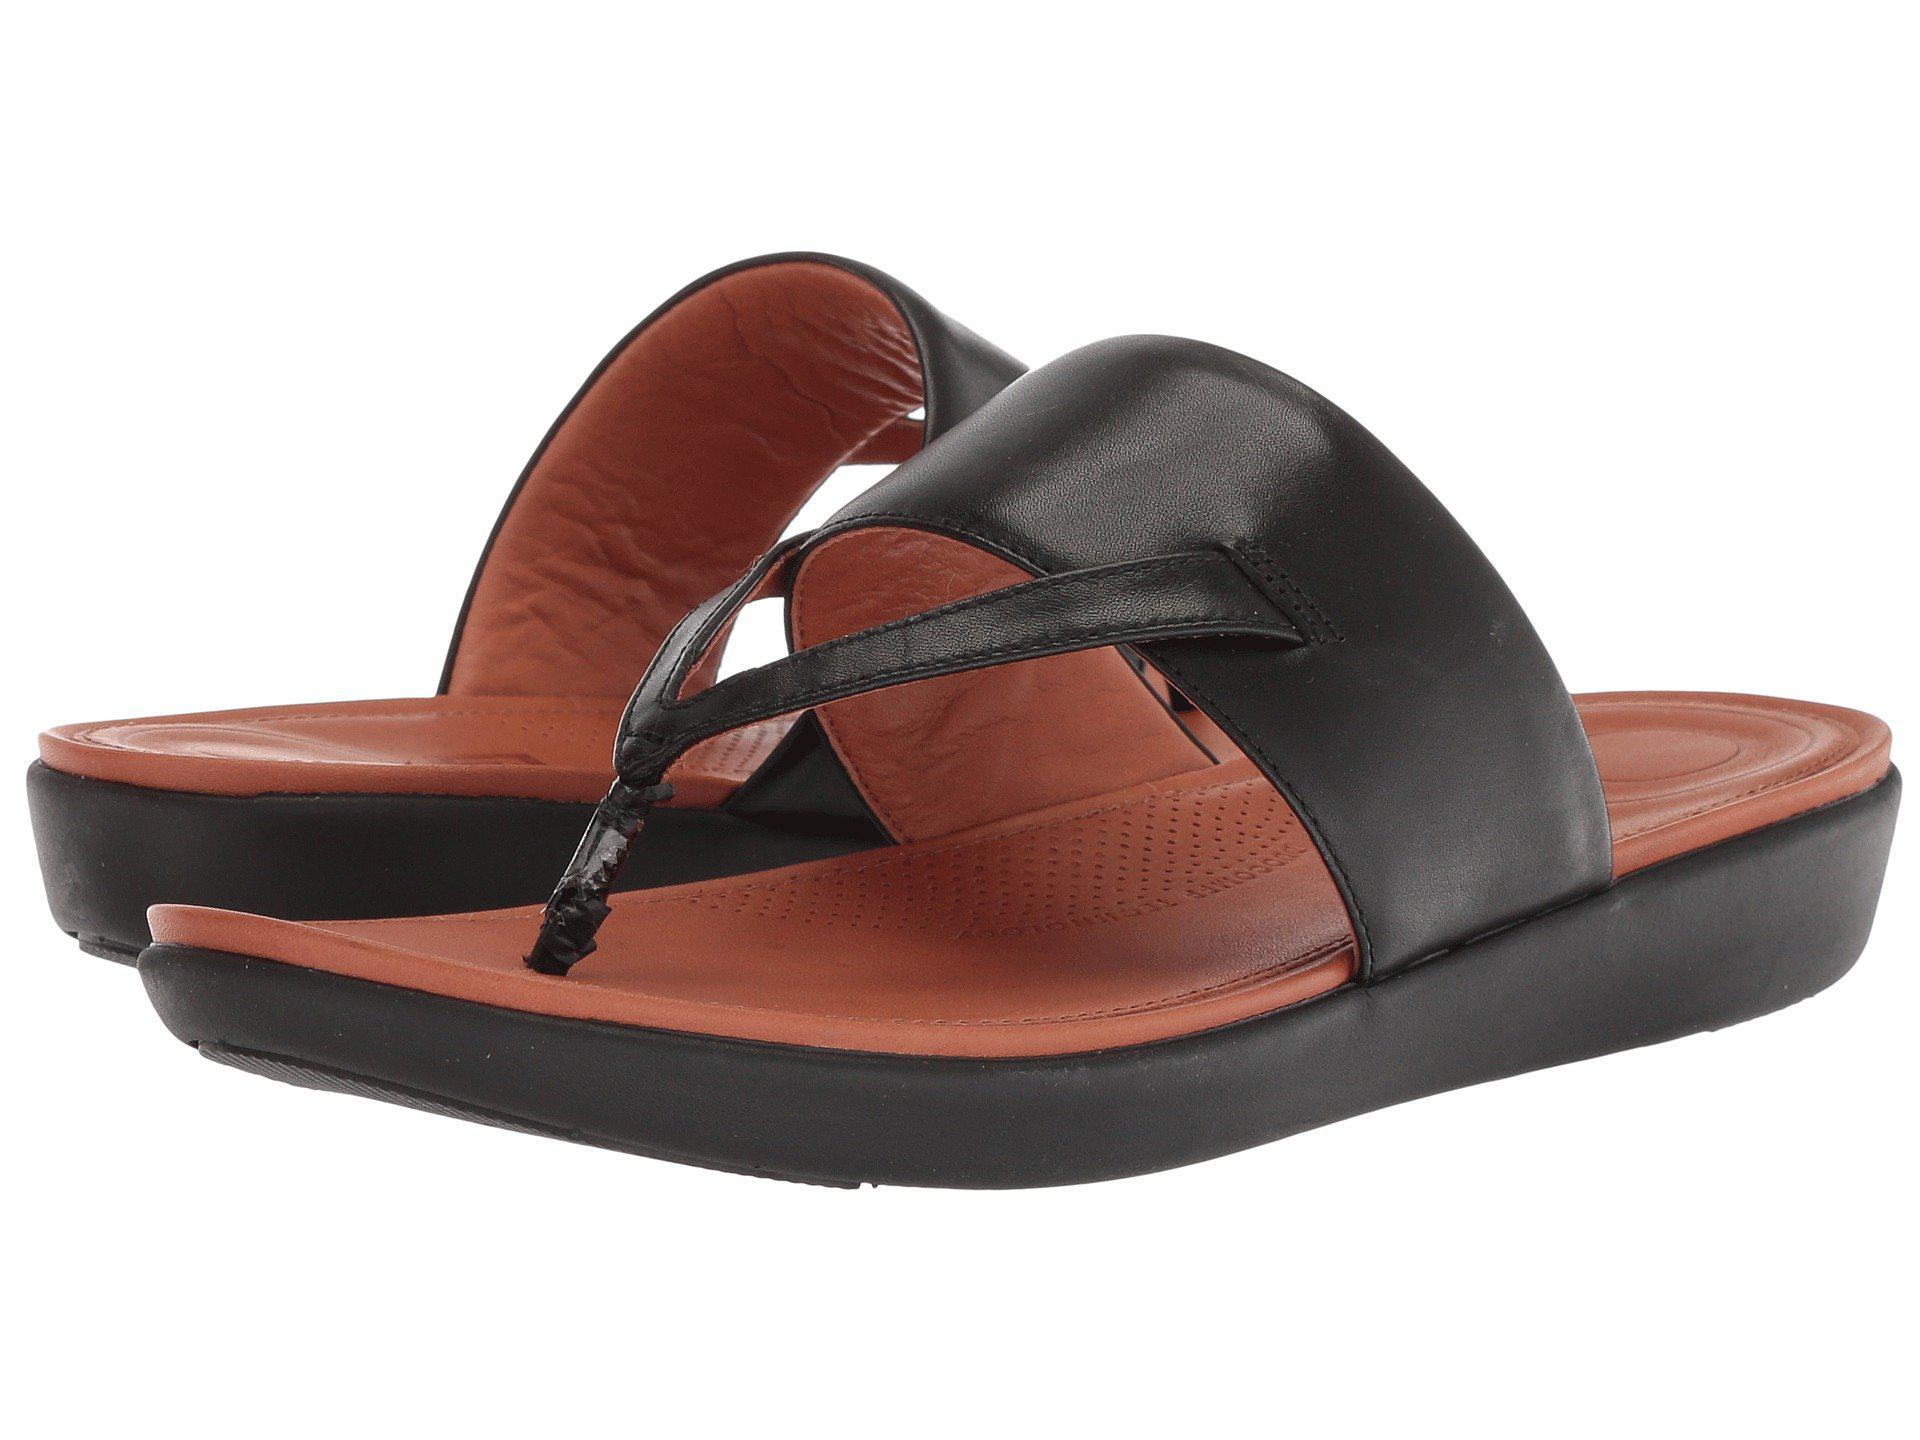 8c470141263 Lyst - Fitflop Delta Toe Thong Sandals in Black - Save 29%